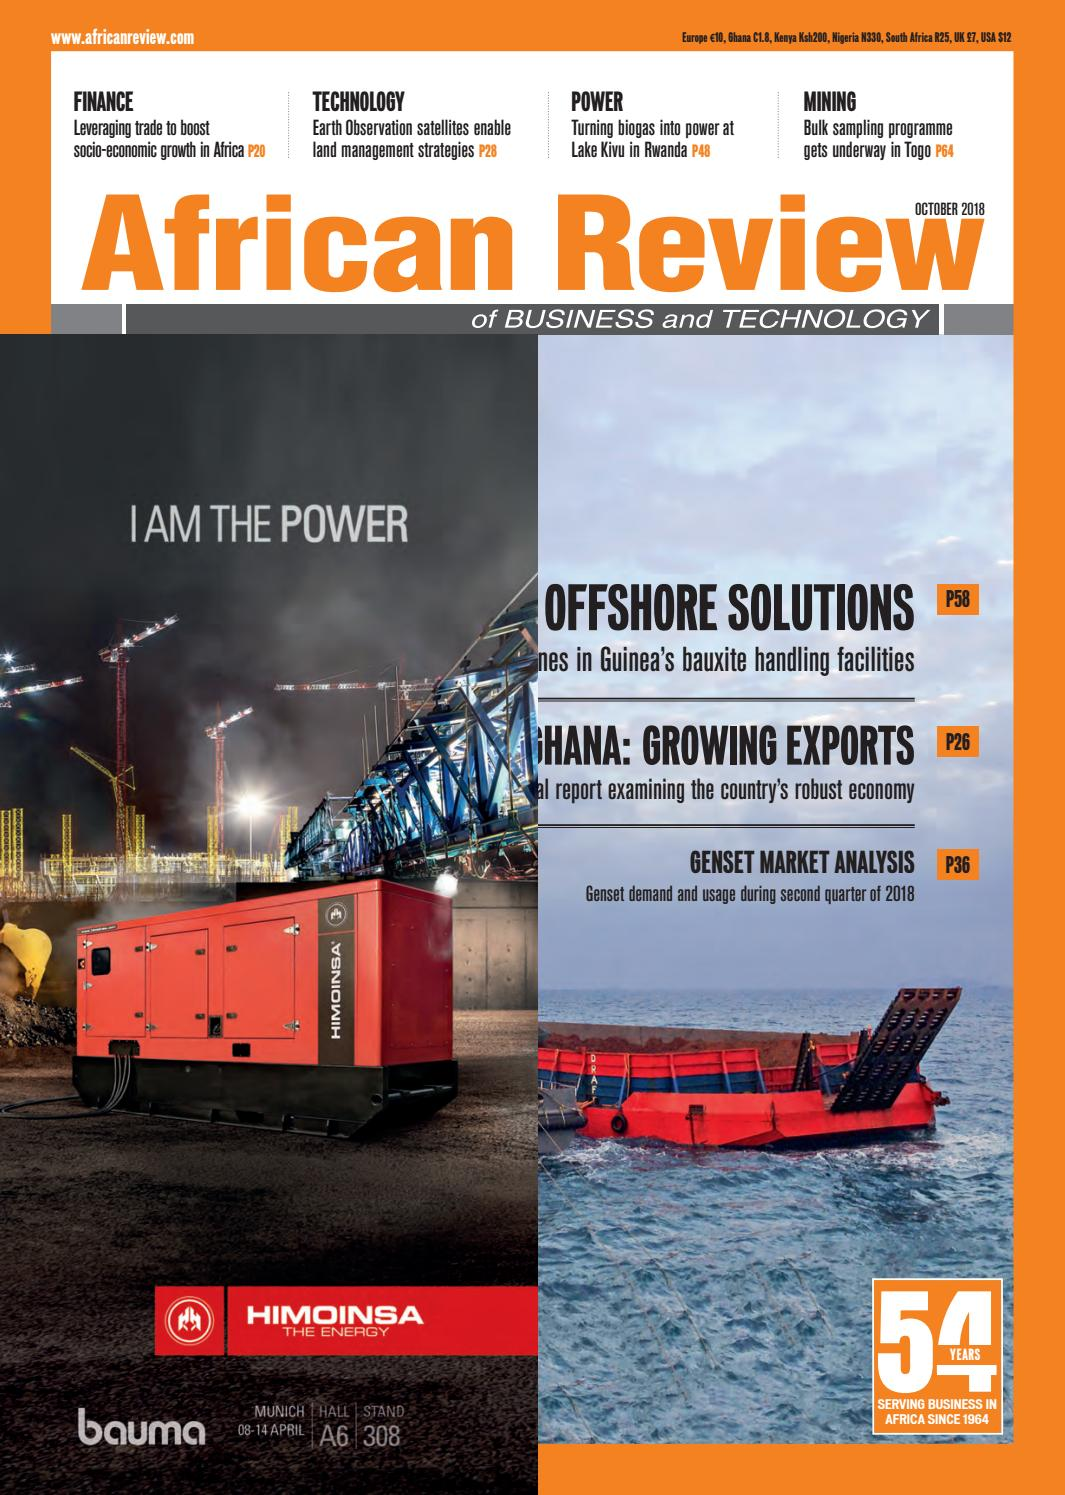 African Review October 2018